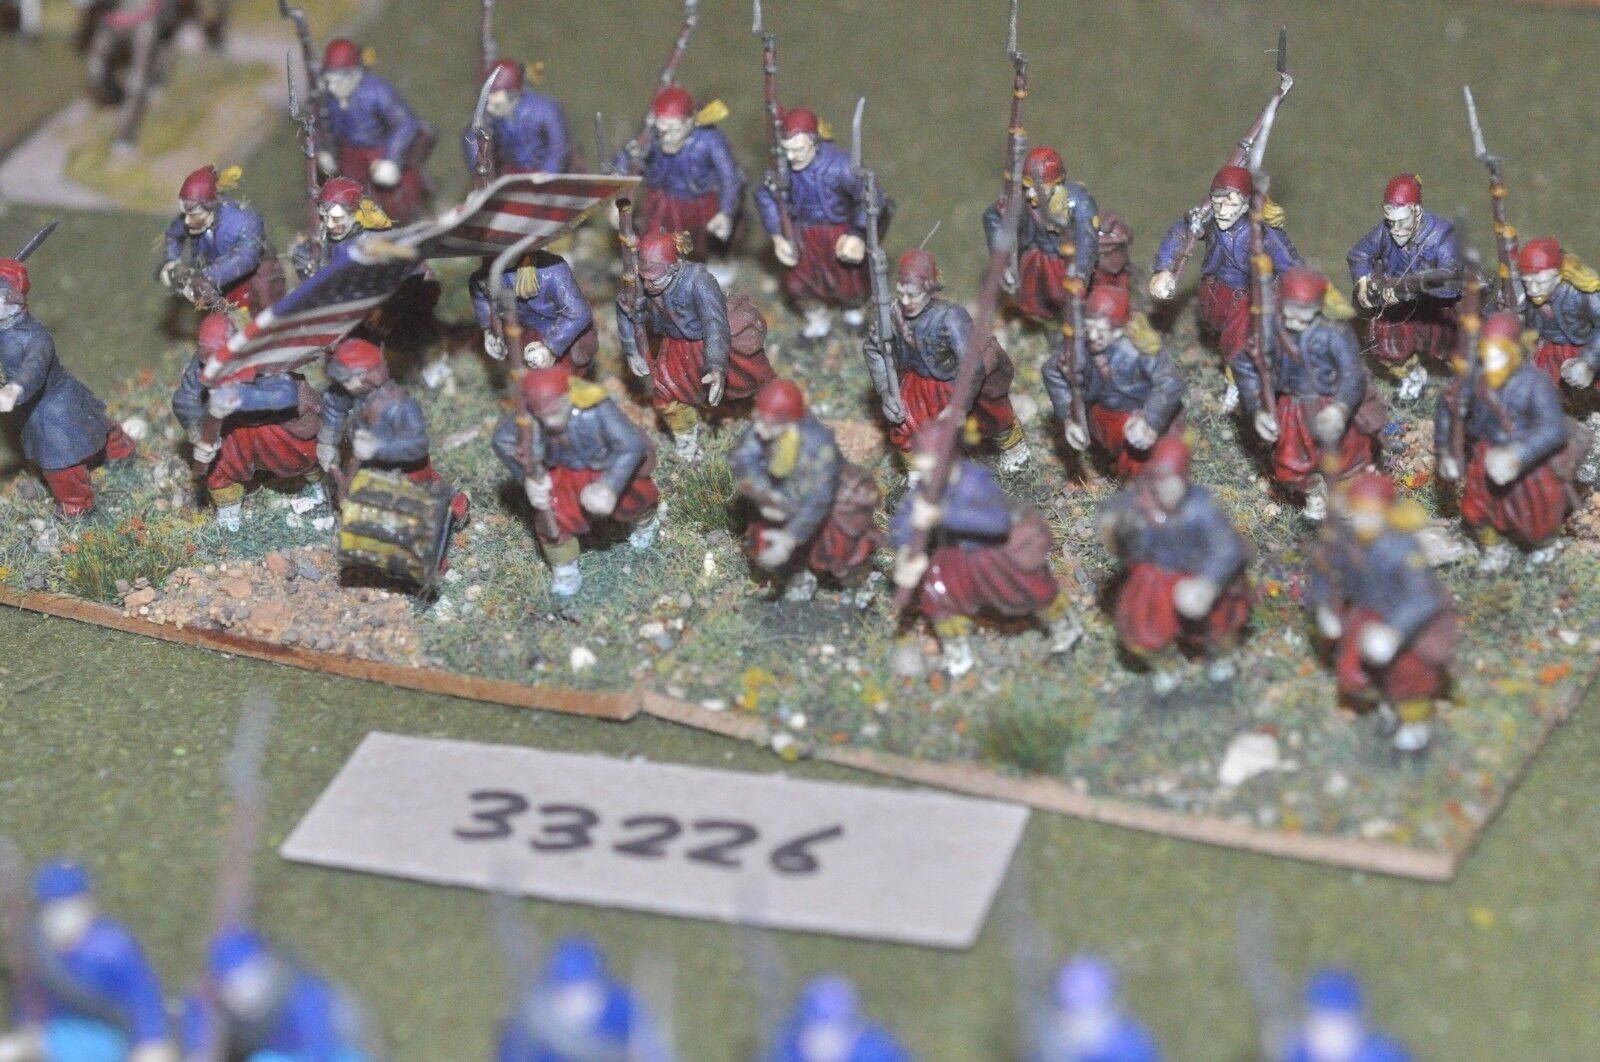 25mm ACW   union - zouaves (plastic) 24 figures - inf (33226)